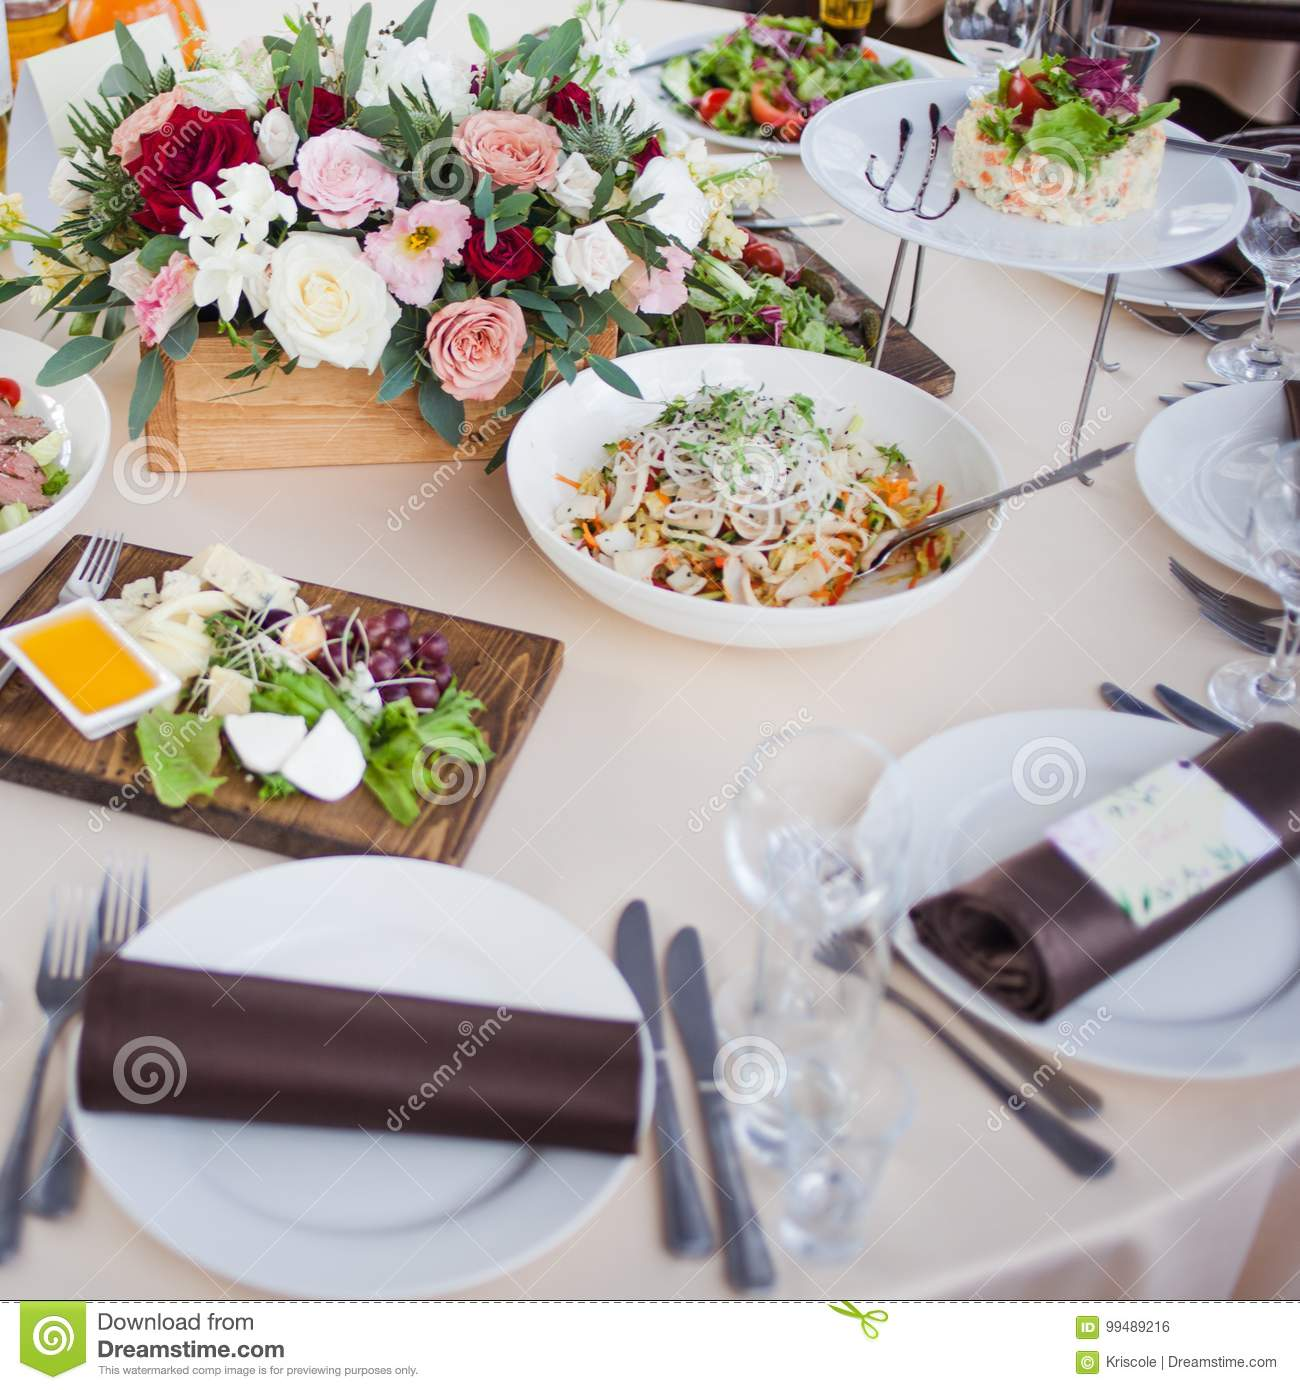 Wedding decor. Flowers in the restaurant, food on the table